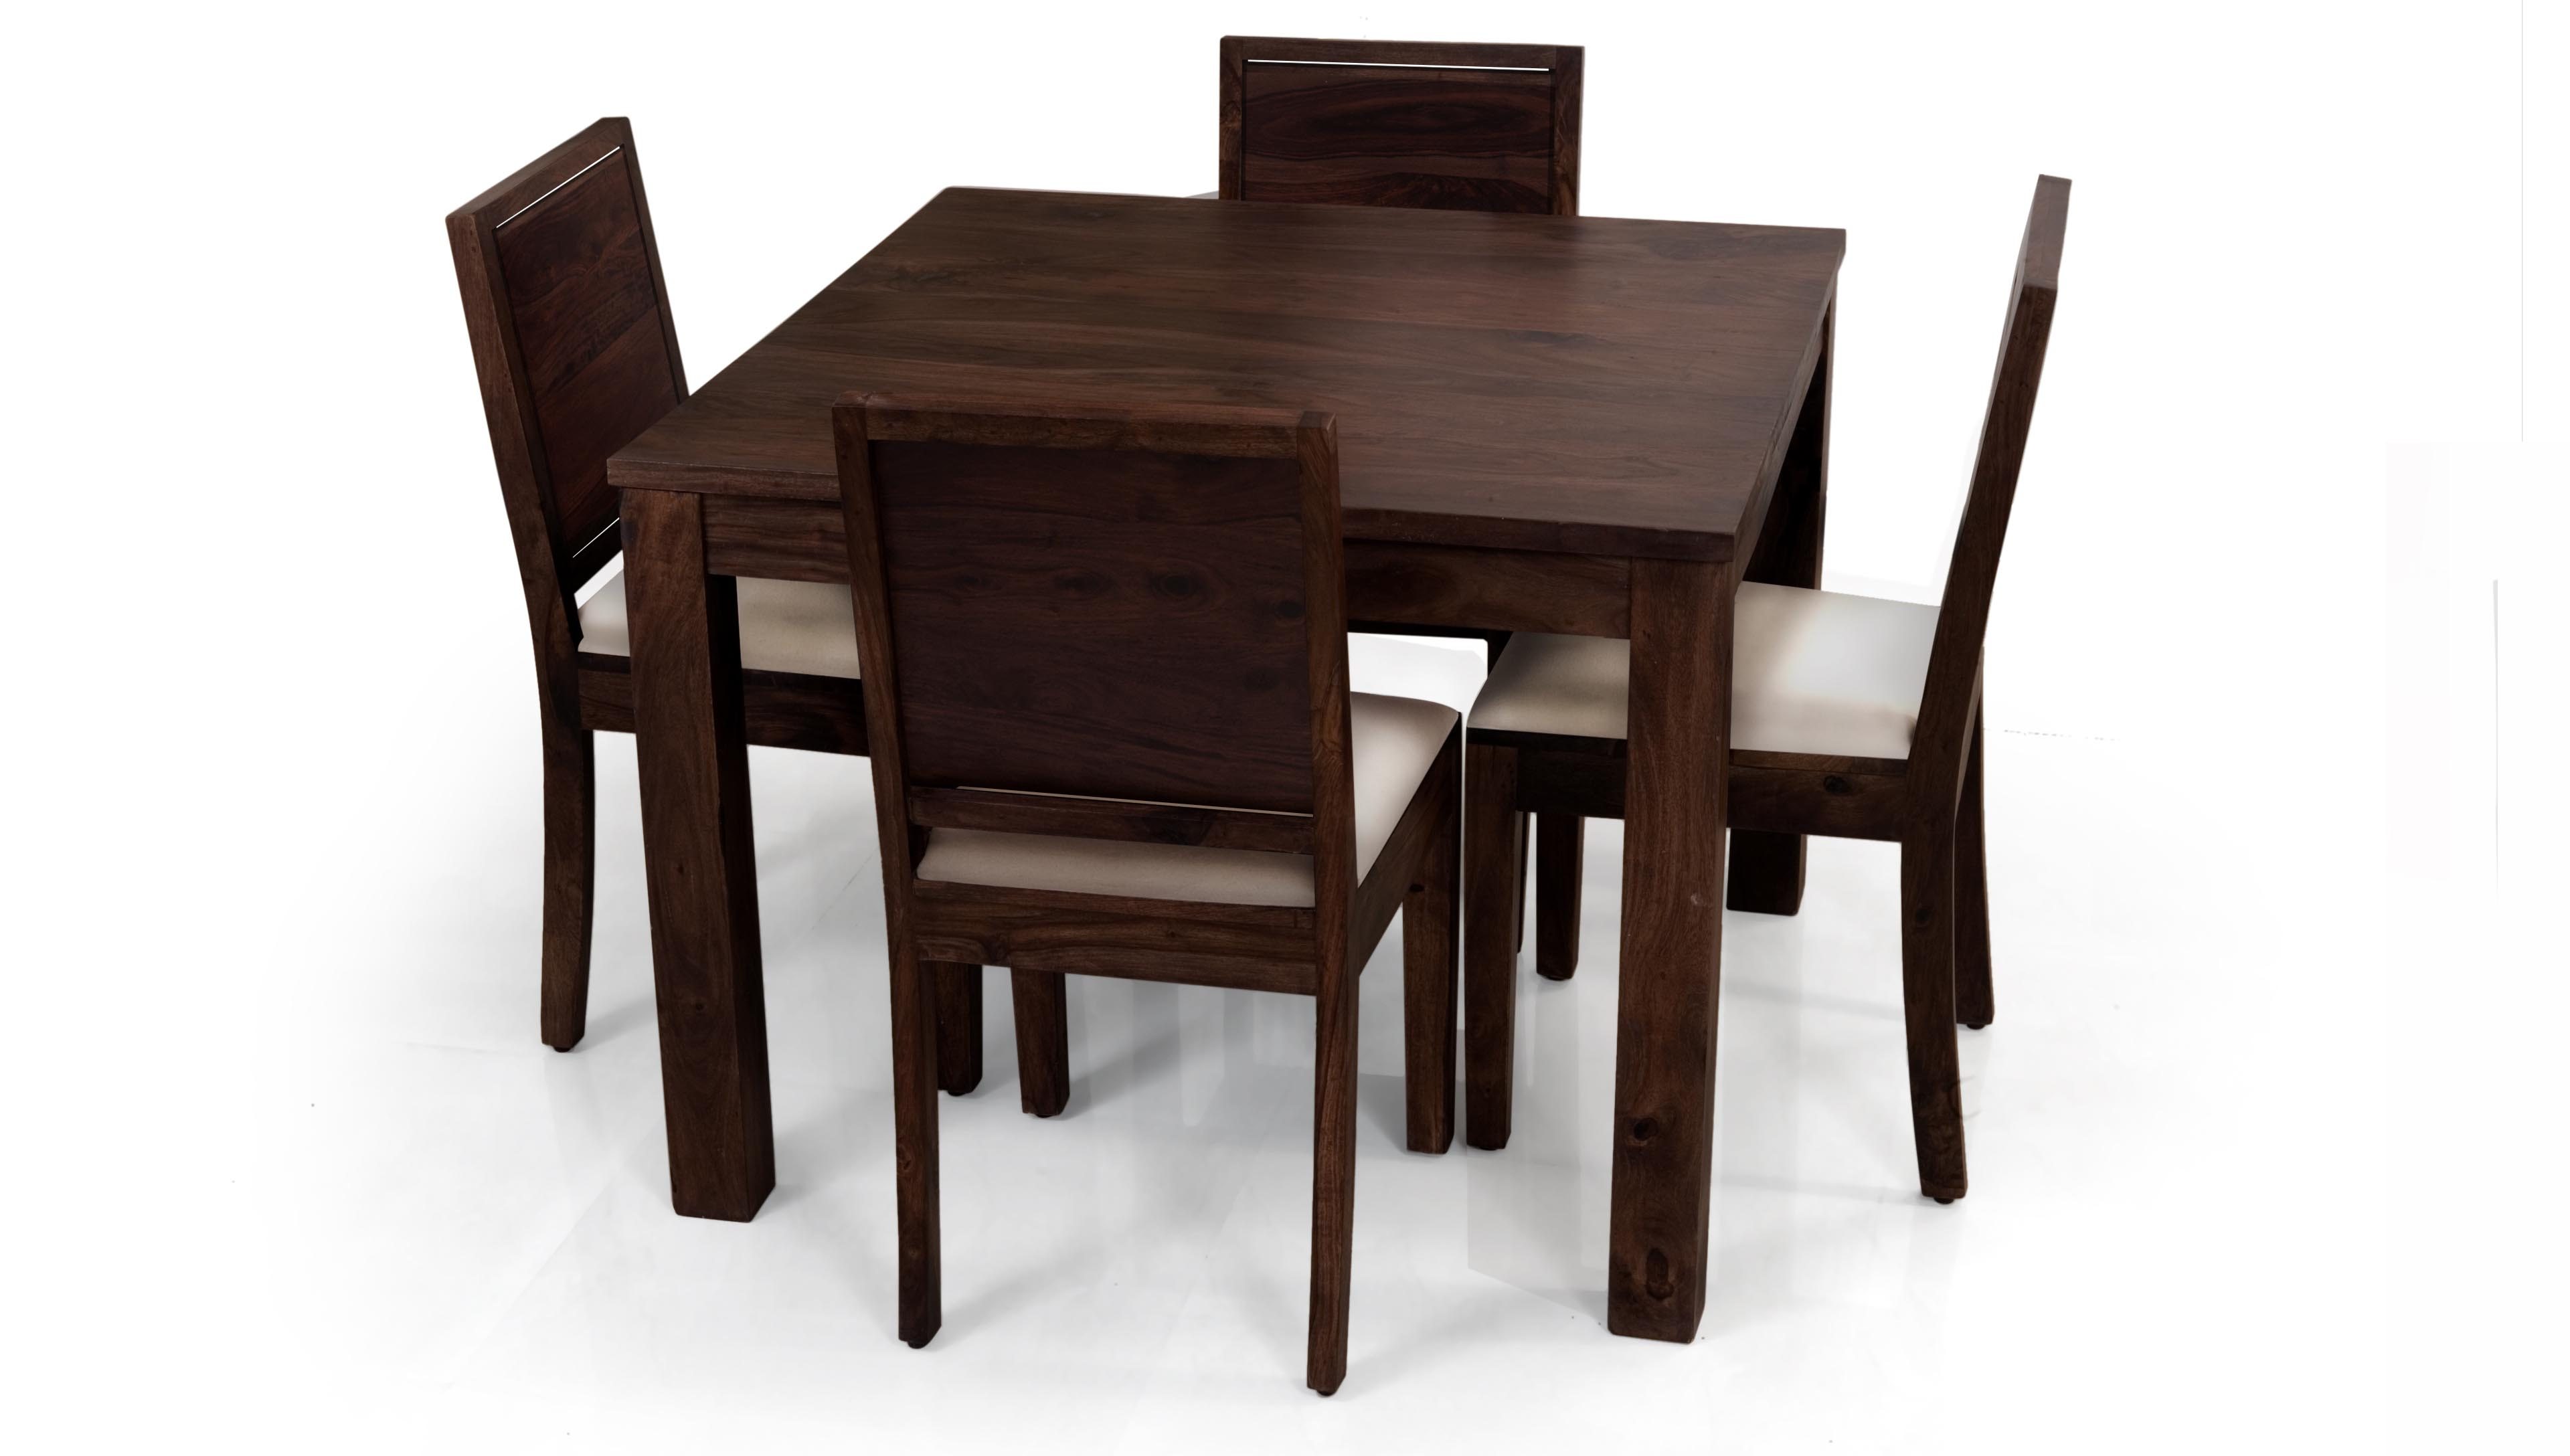 Square dining table for 4 homesfeed for Small square dining room table